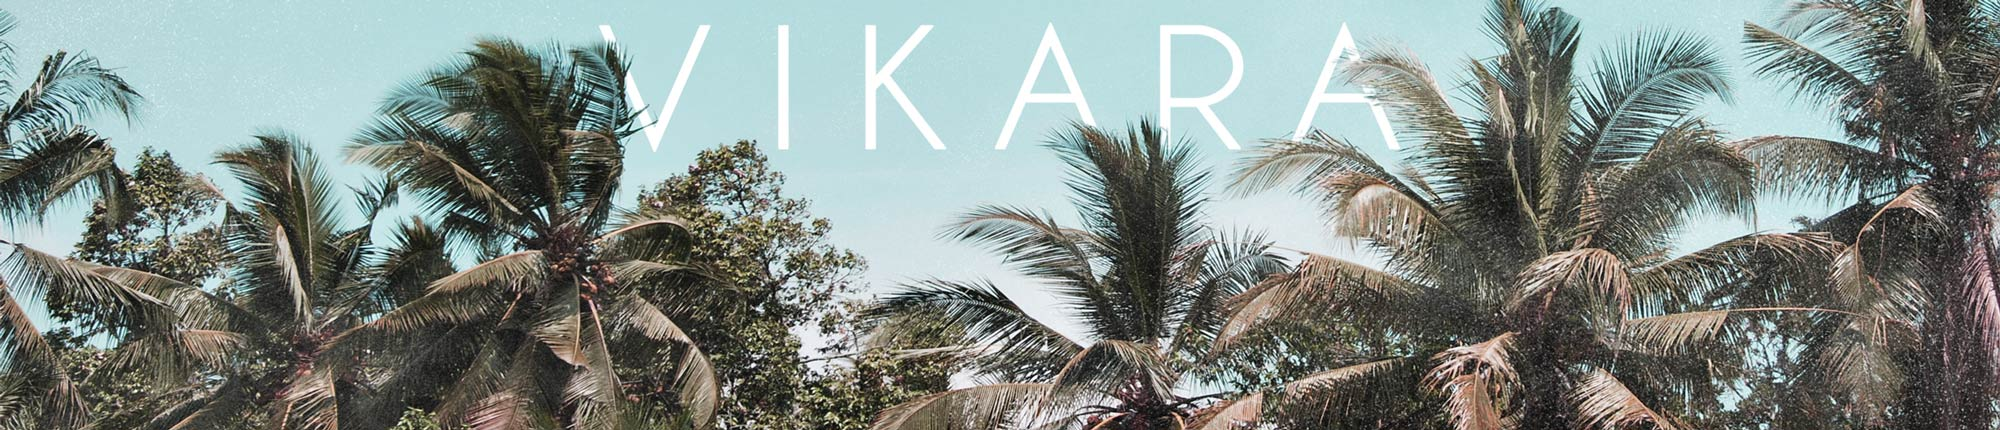 Vikara - Yoga, Plant Medicine & Surf Retreats in Ecuador